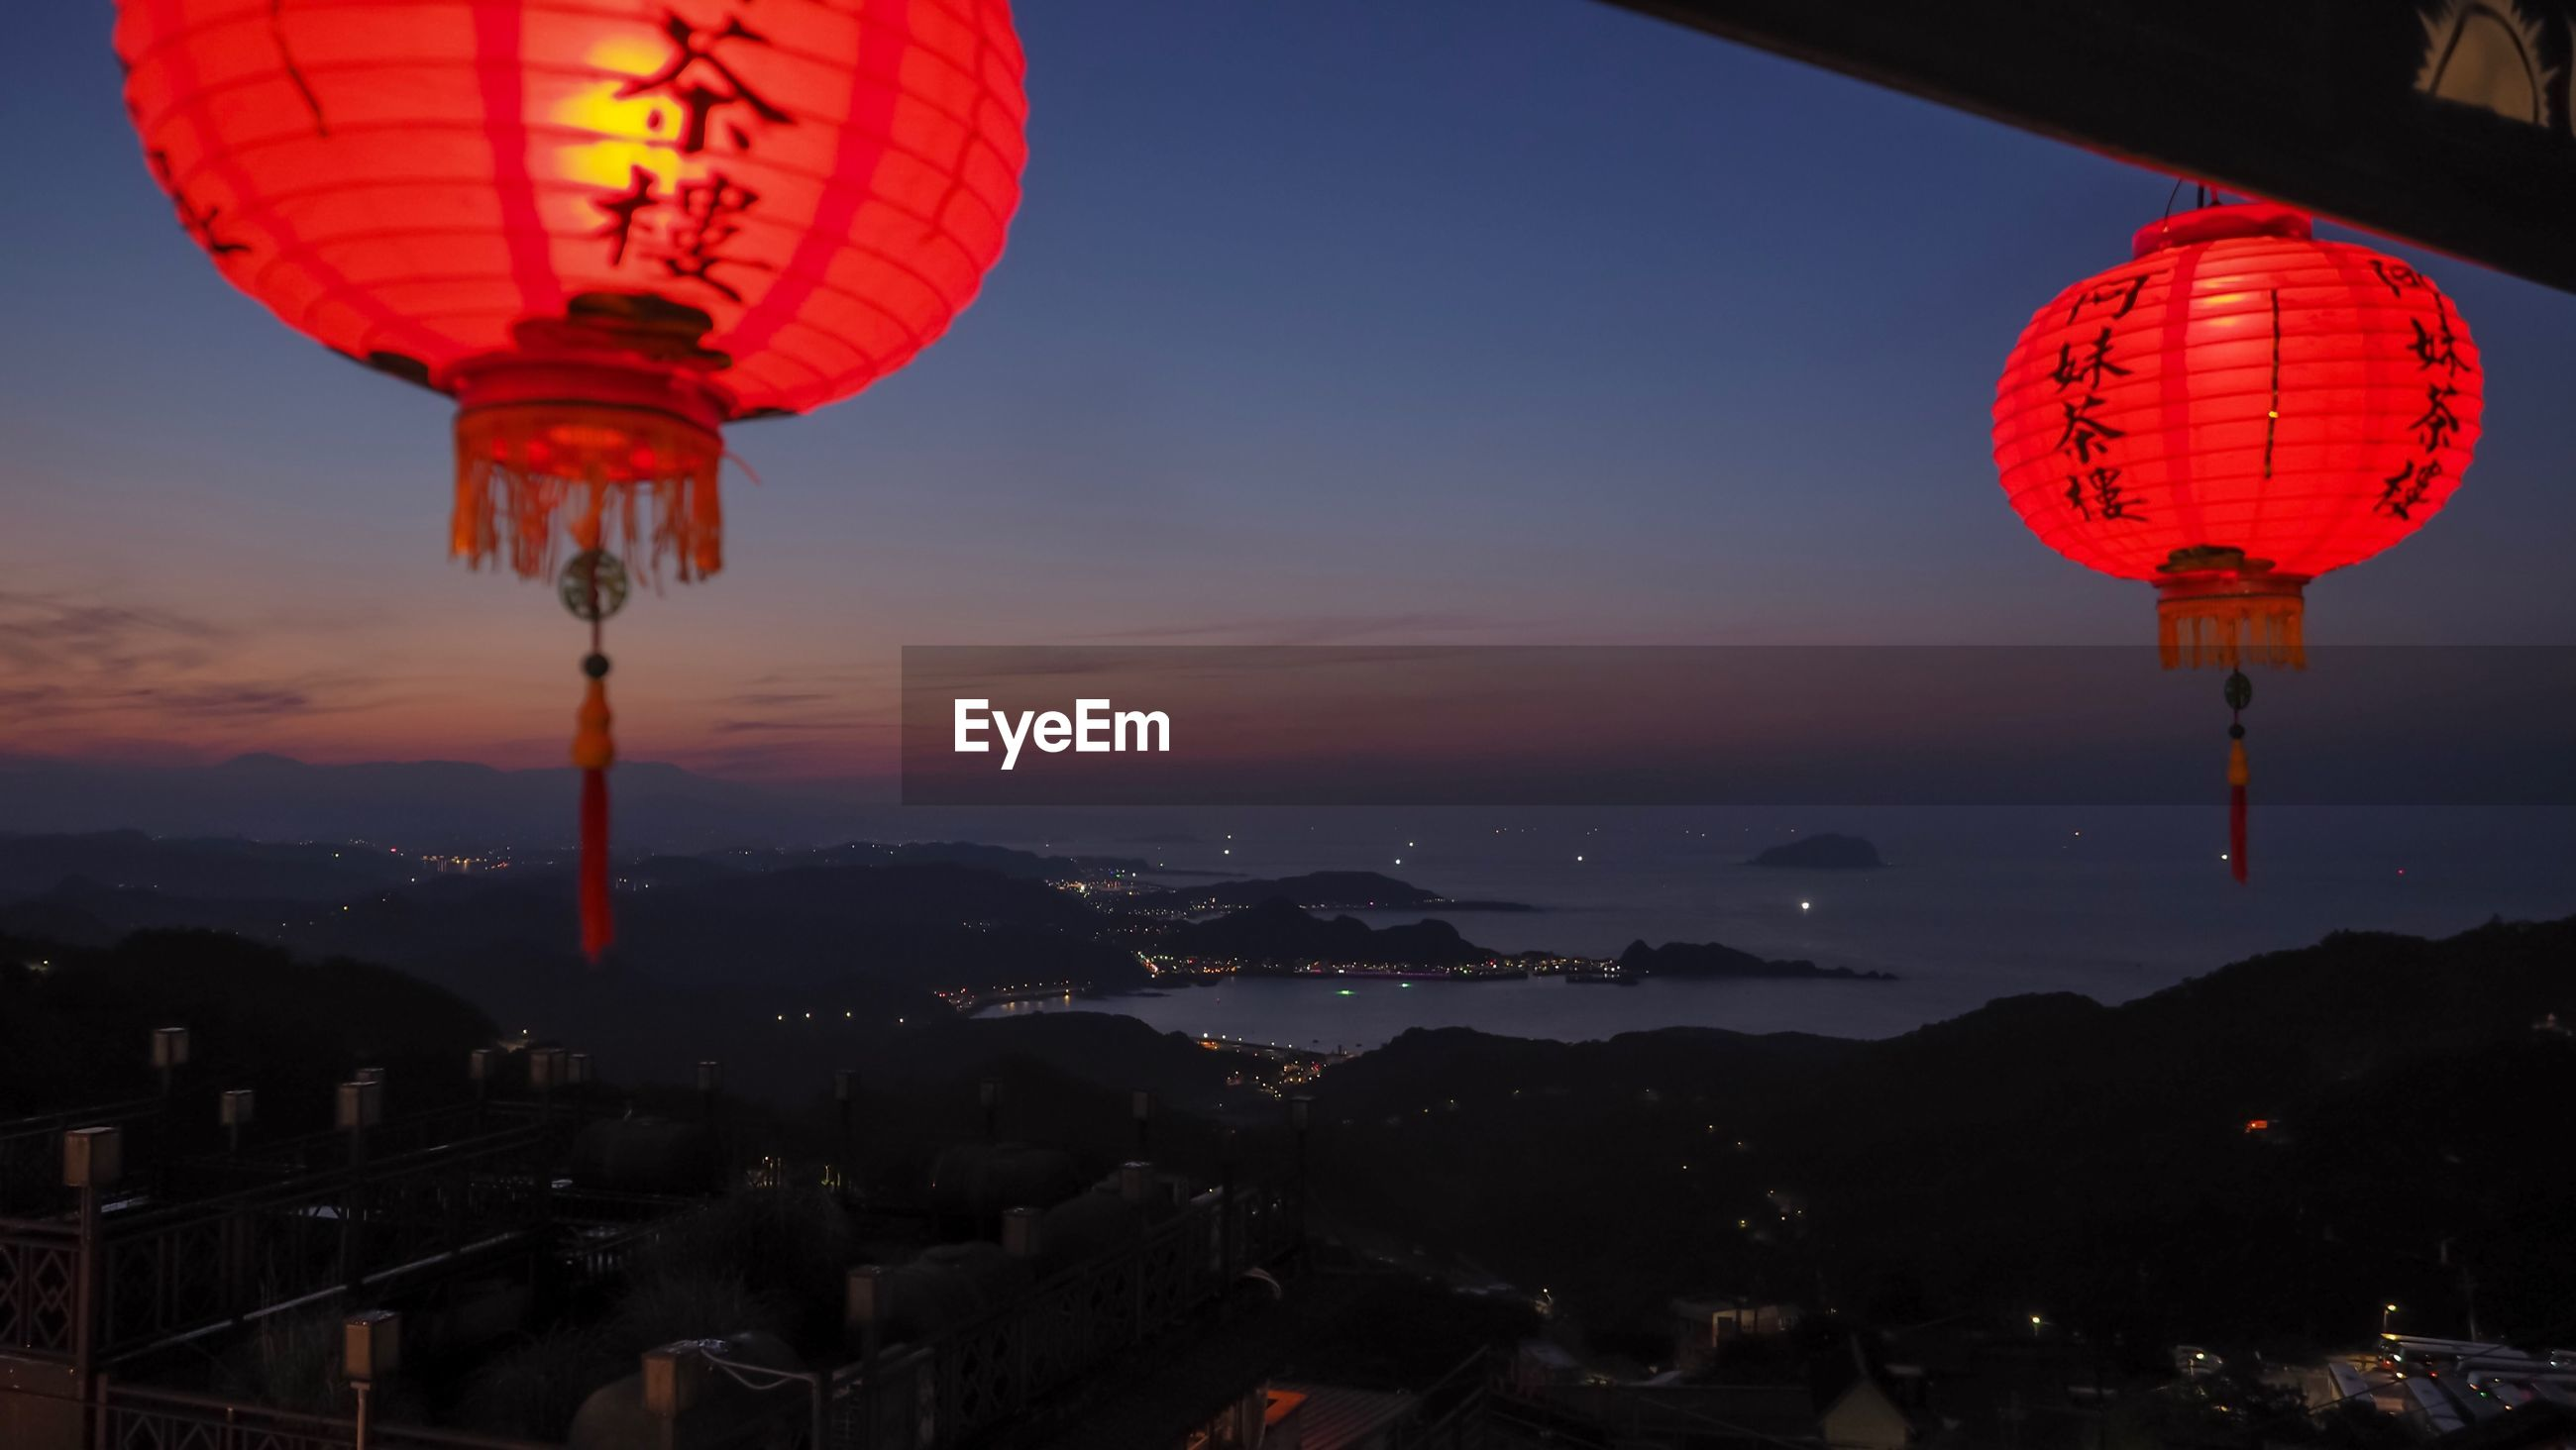 LOW ANGLE VIEW OF ILLUMINATED LANTERNS HANGING AGAINST SKY DURING SUNSET